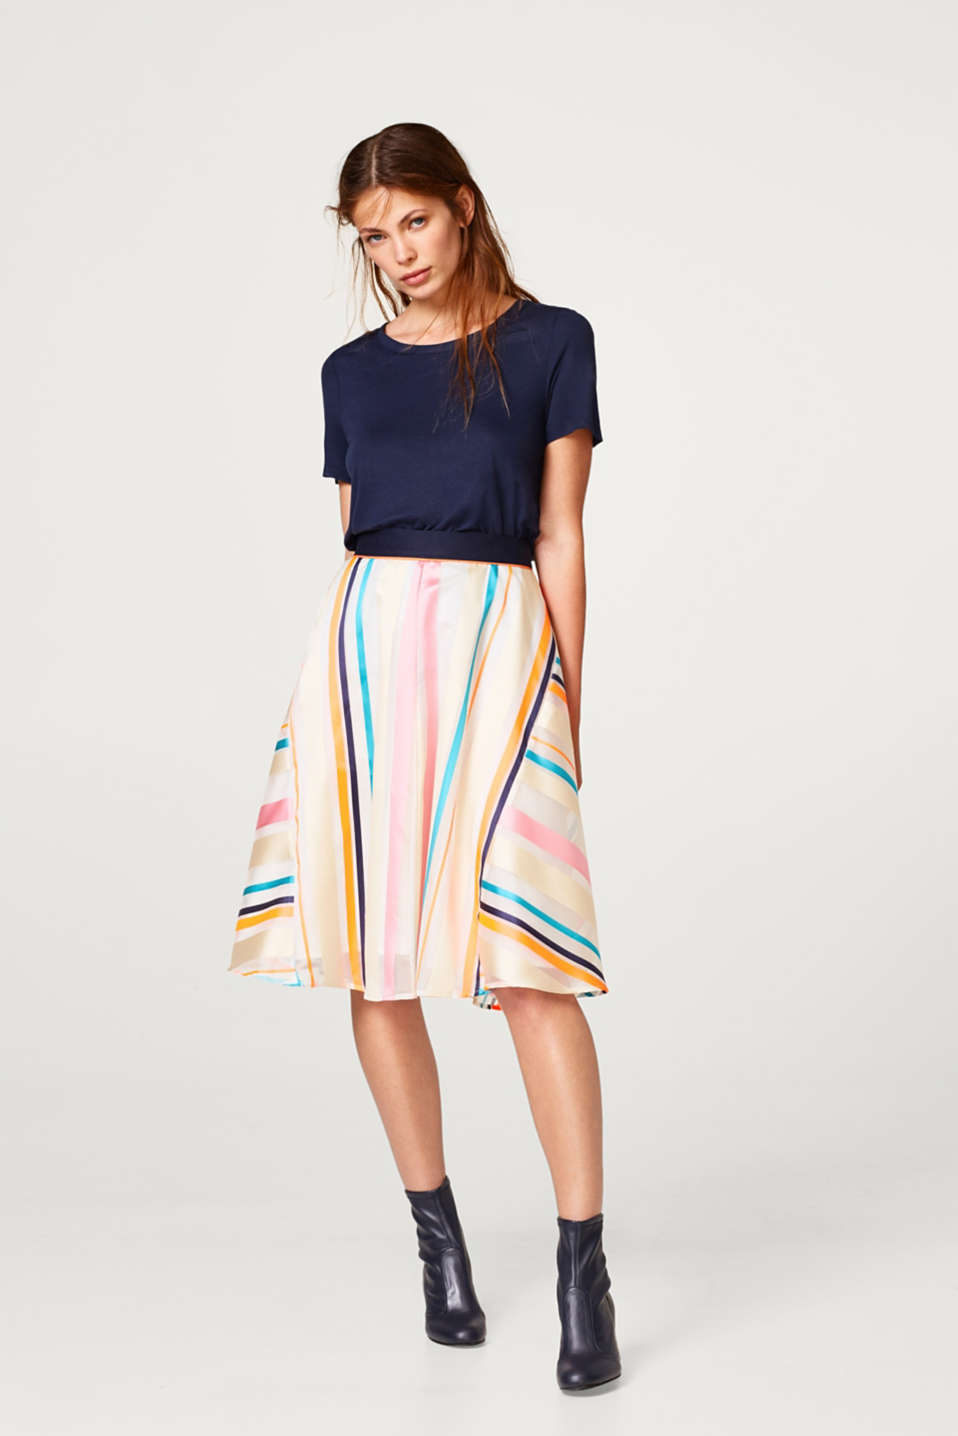 Sheer skirt with neon stripes